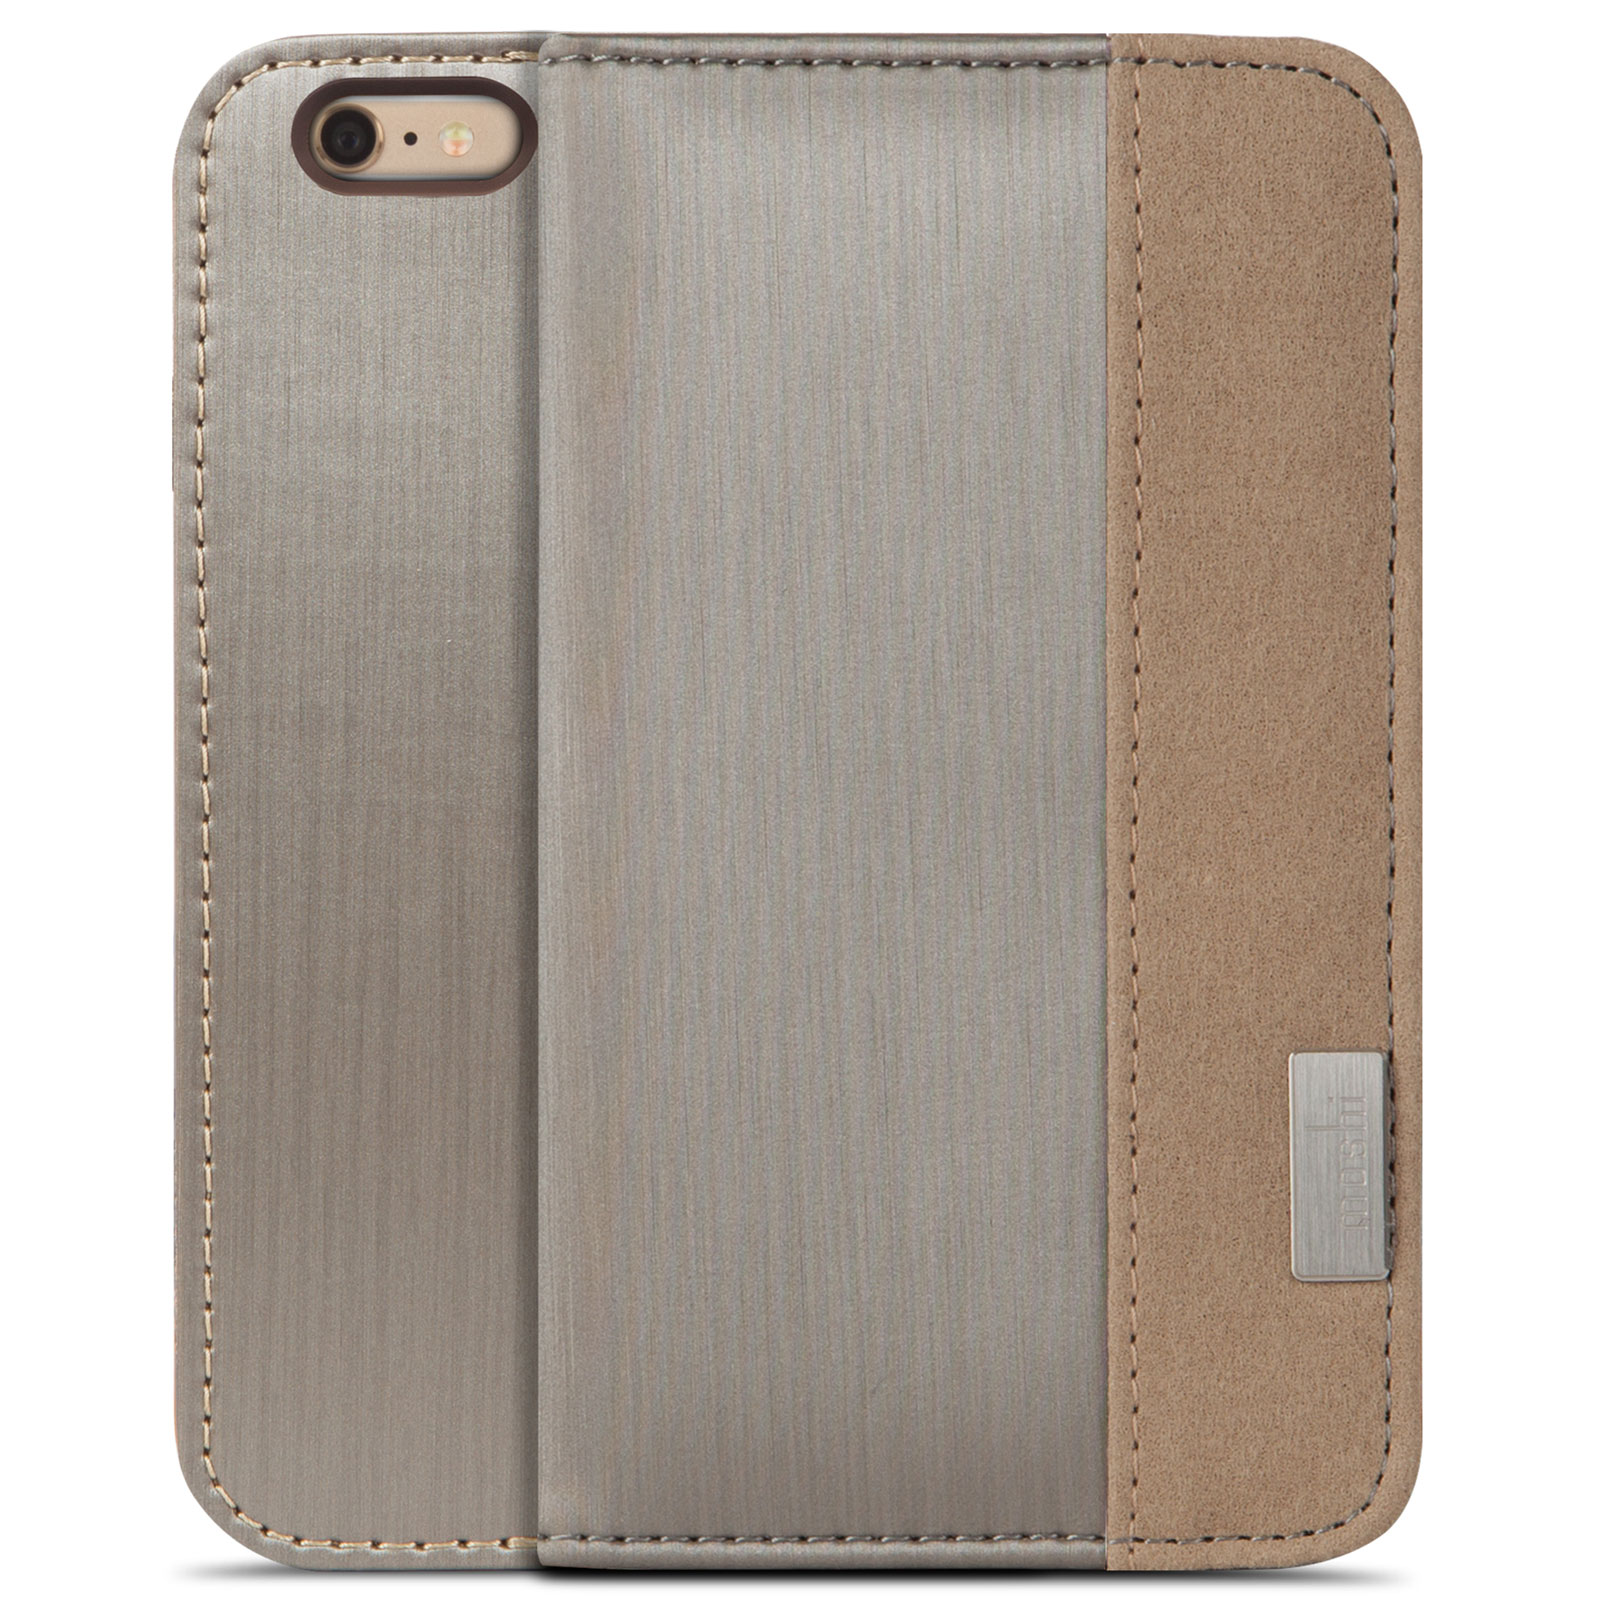 folded iphone 6 plus case